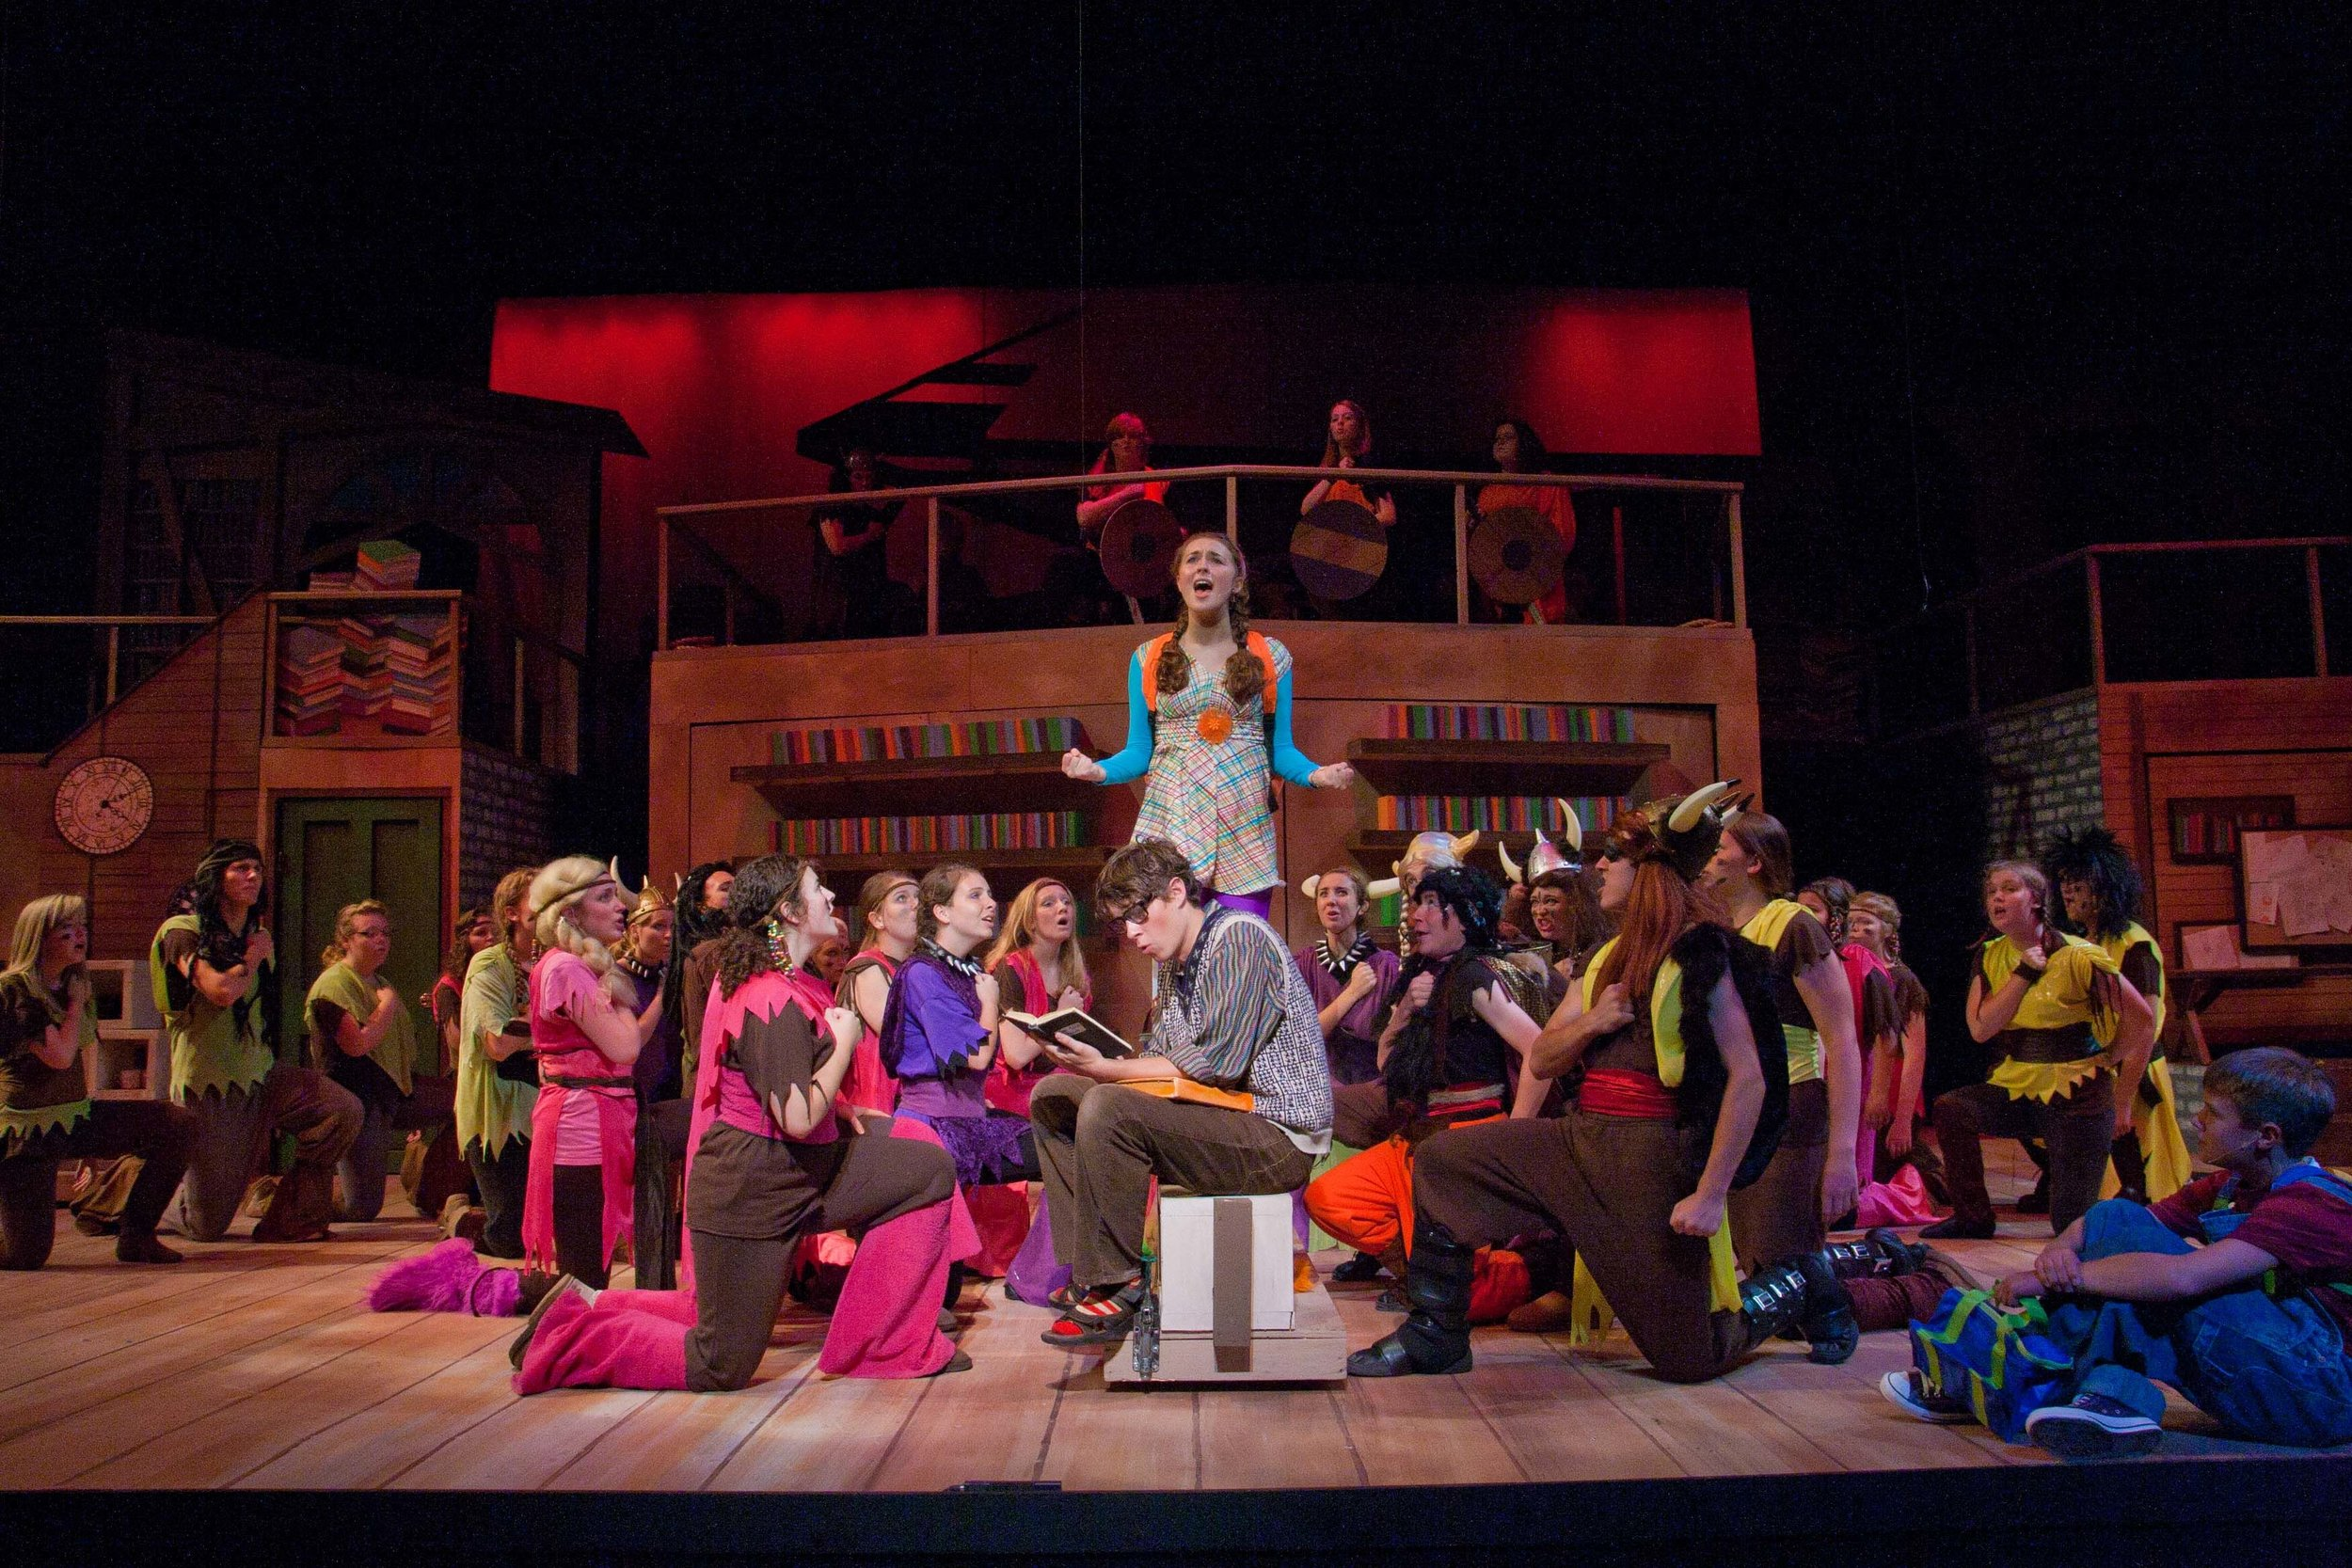 Rachel Costello, Sean Skahill and Company in  Yo, Vikings!  at Upper Darby Summer Stage. Photo: Cate Paxson.